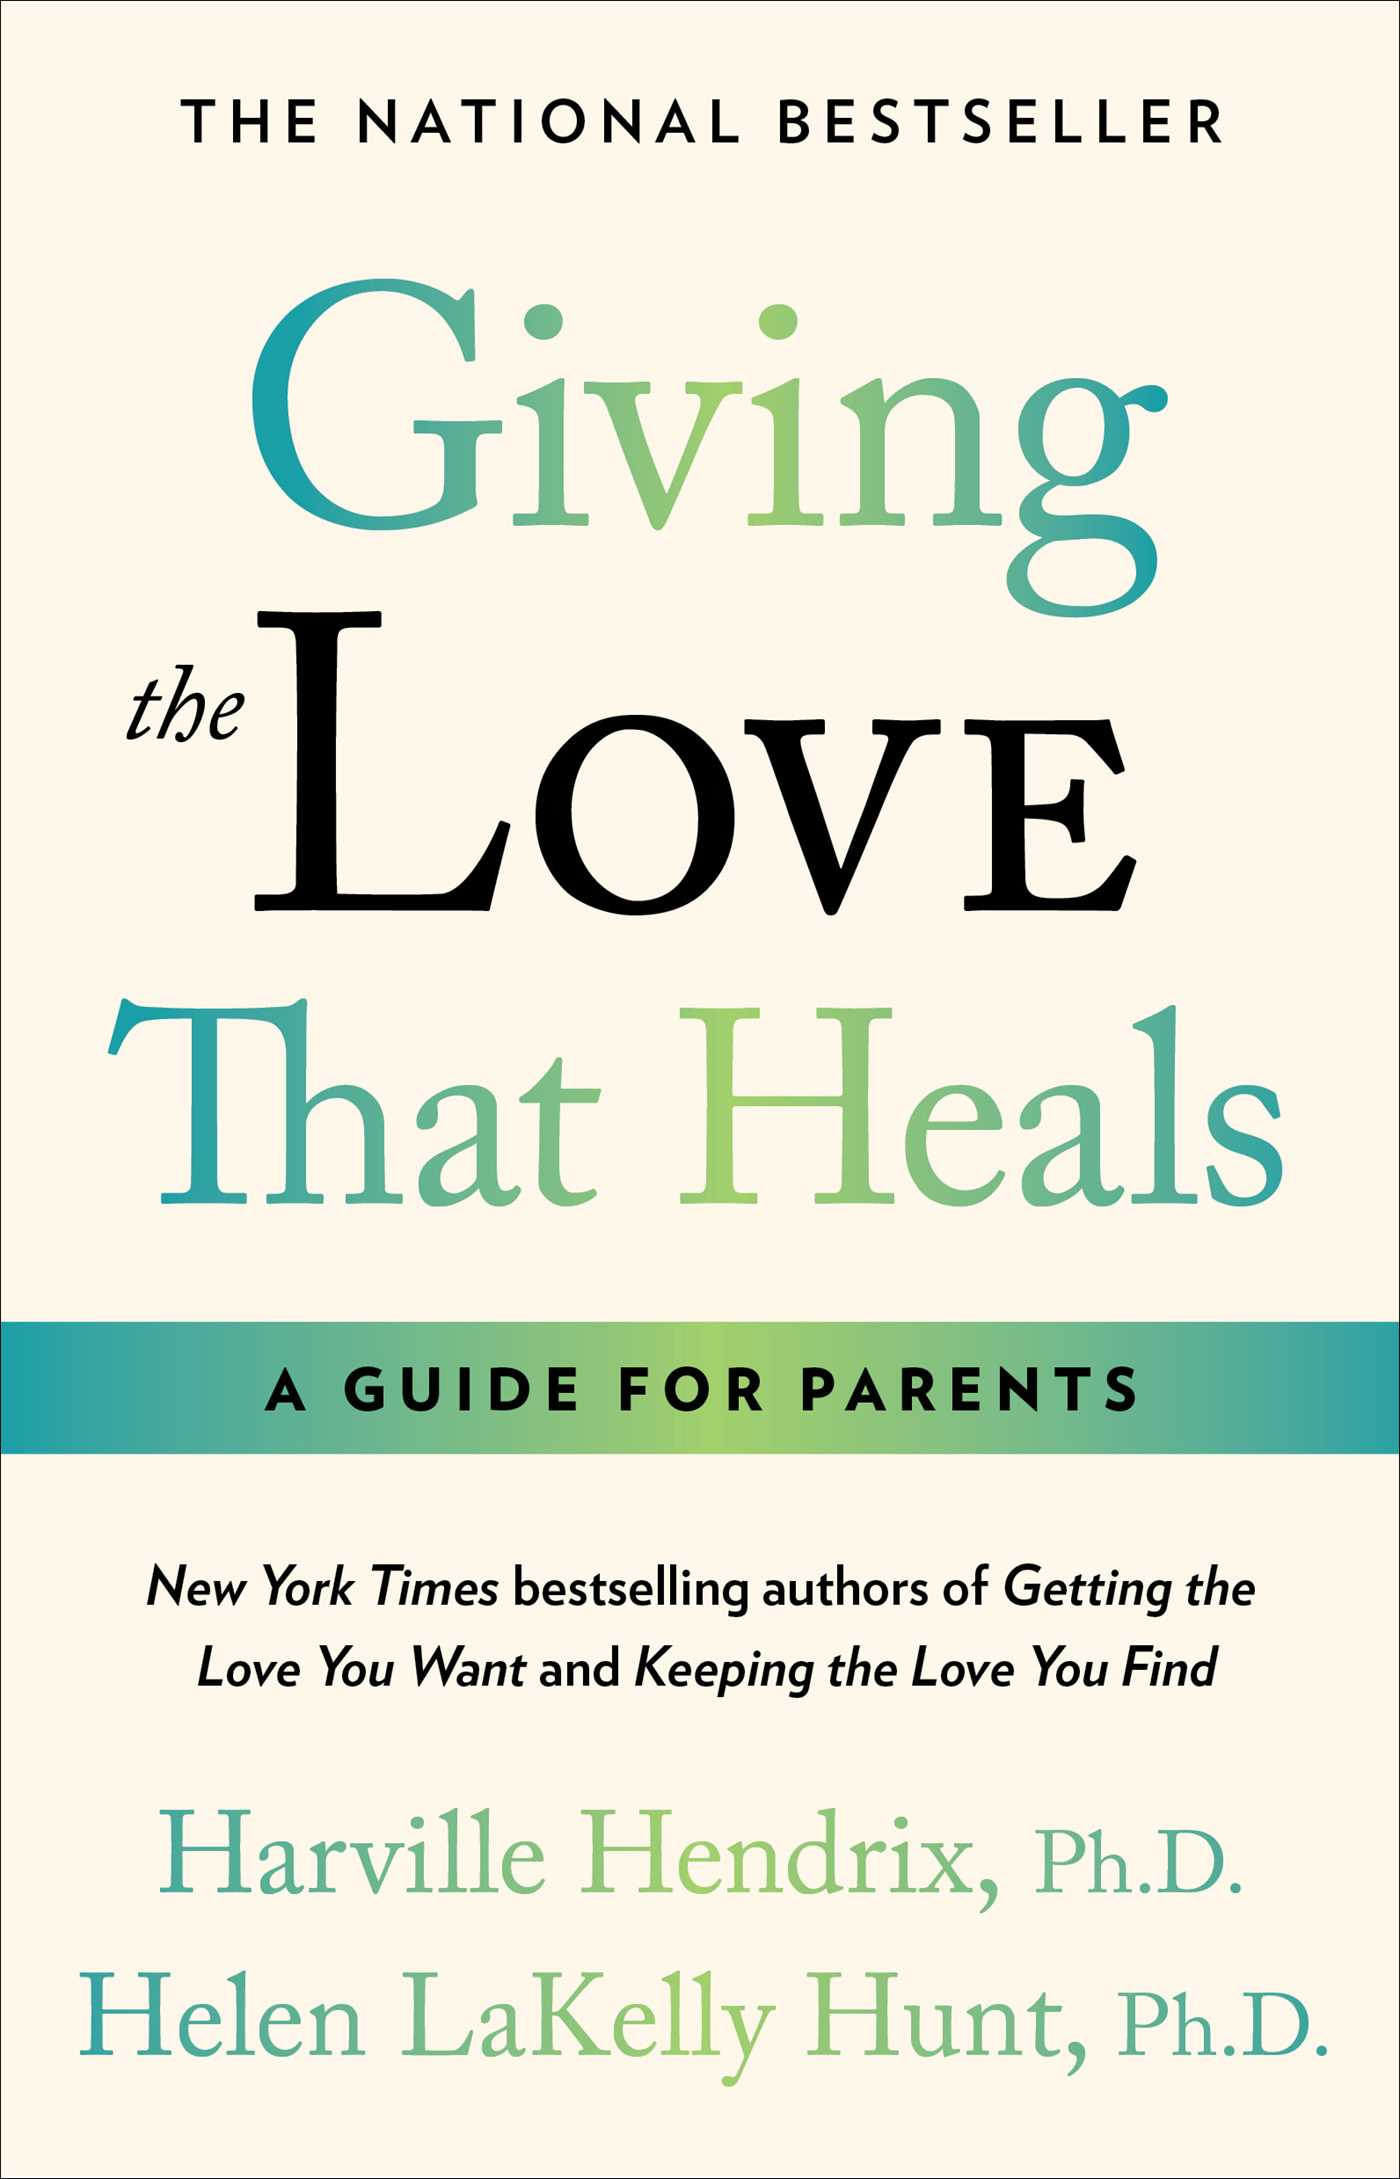 Giving the love that heals 9780671793999 hr